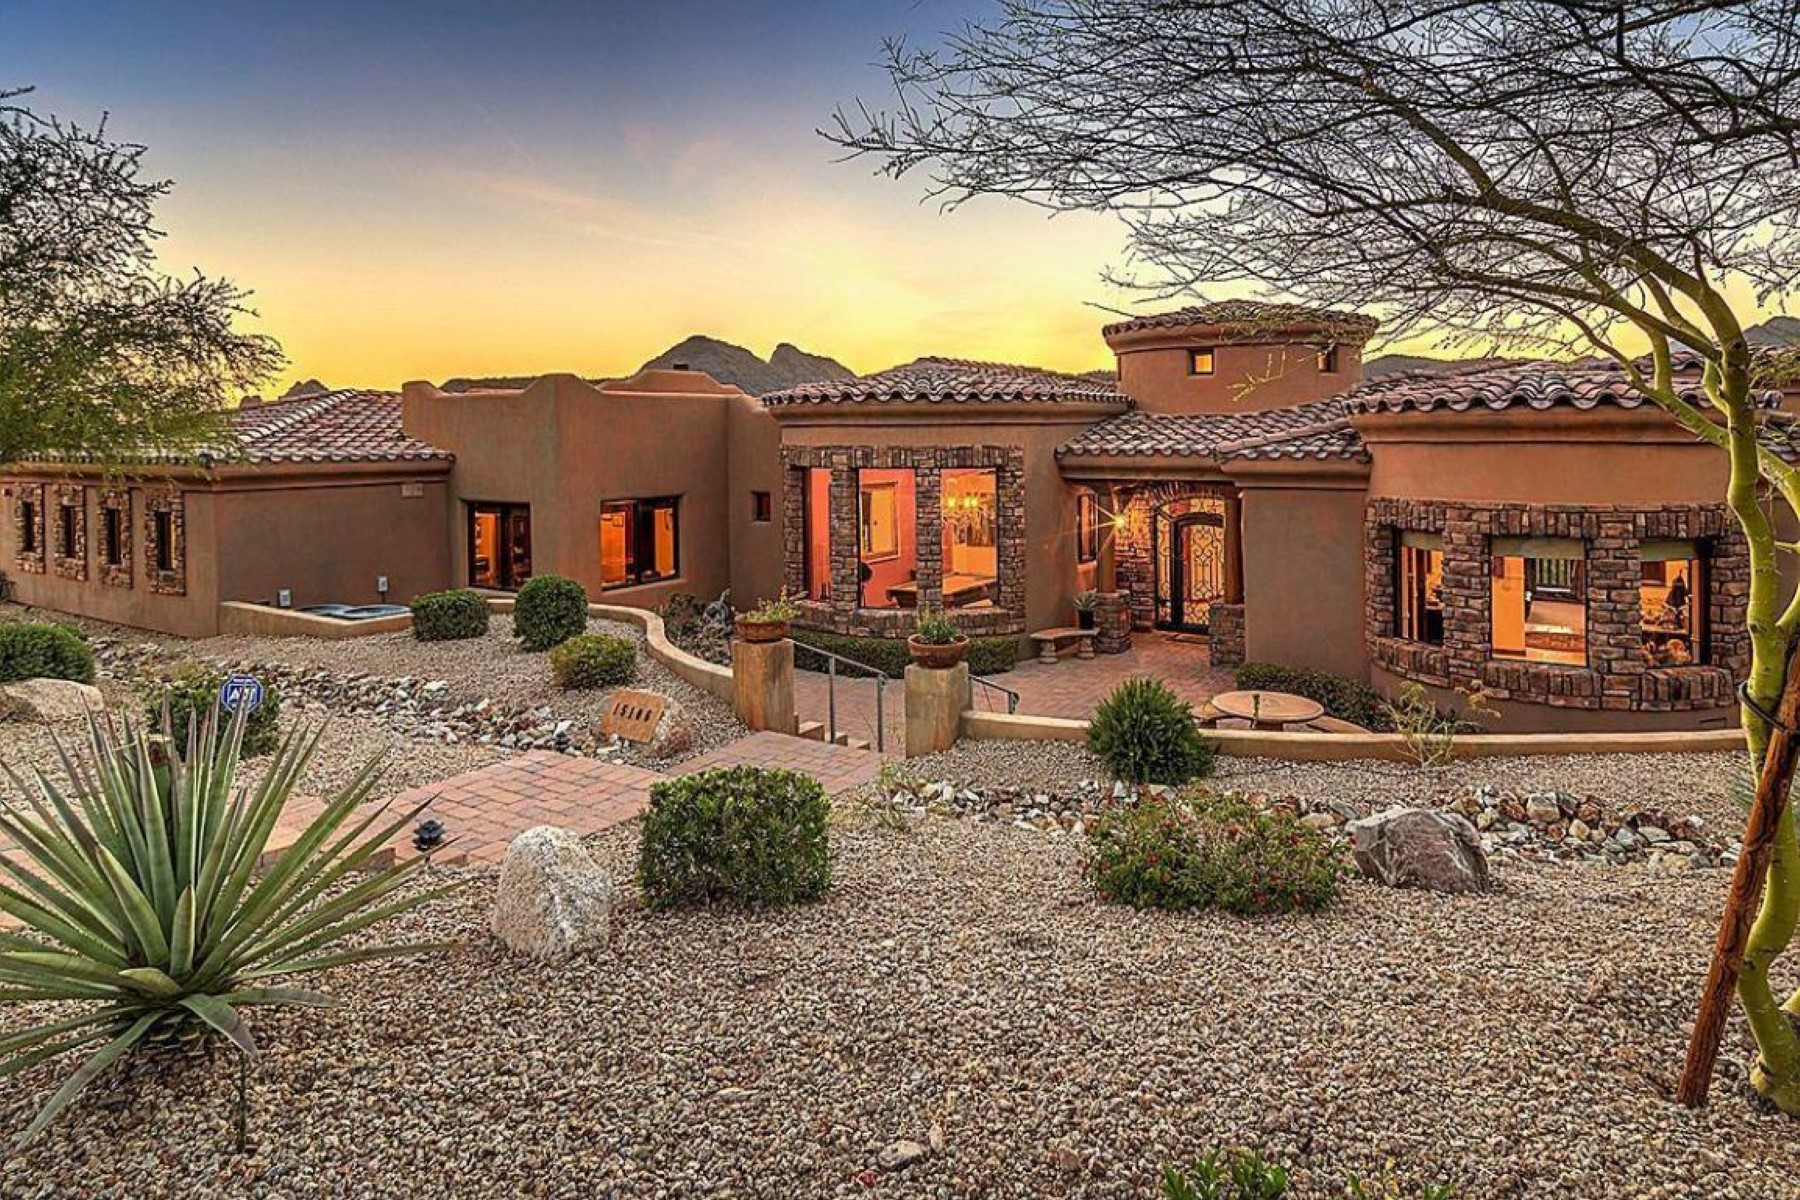 Single Family Home for Sale at Truly timeless beautiful Tuscan home 15106 E Miravista Dr Fountain Hills, Arizona, 85268 United States